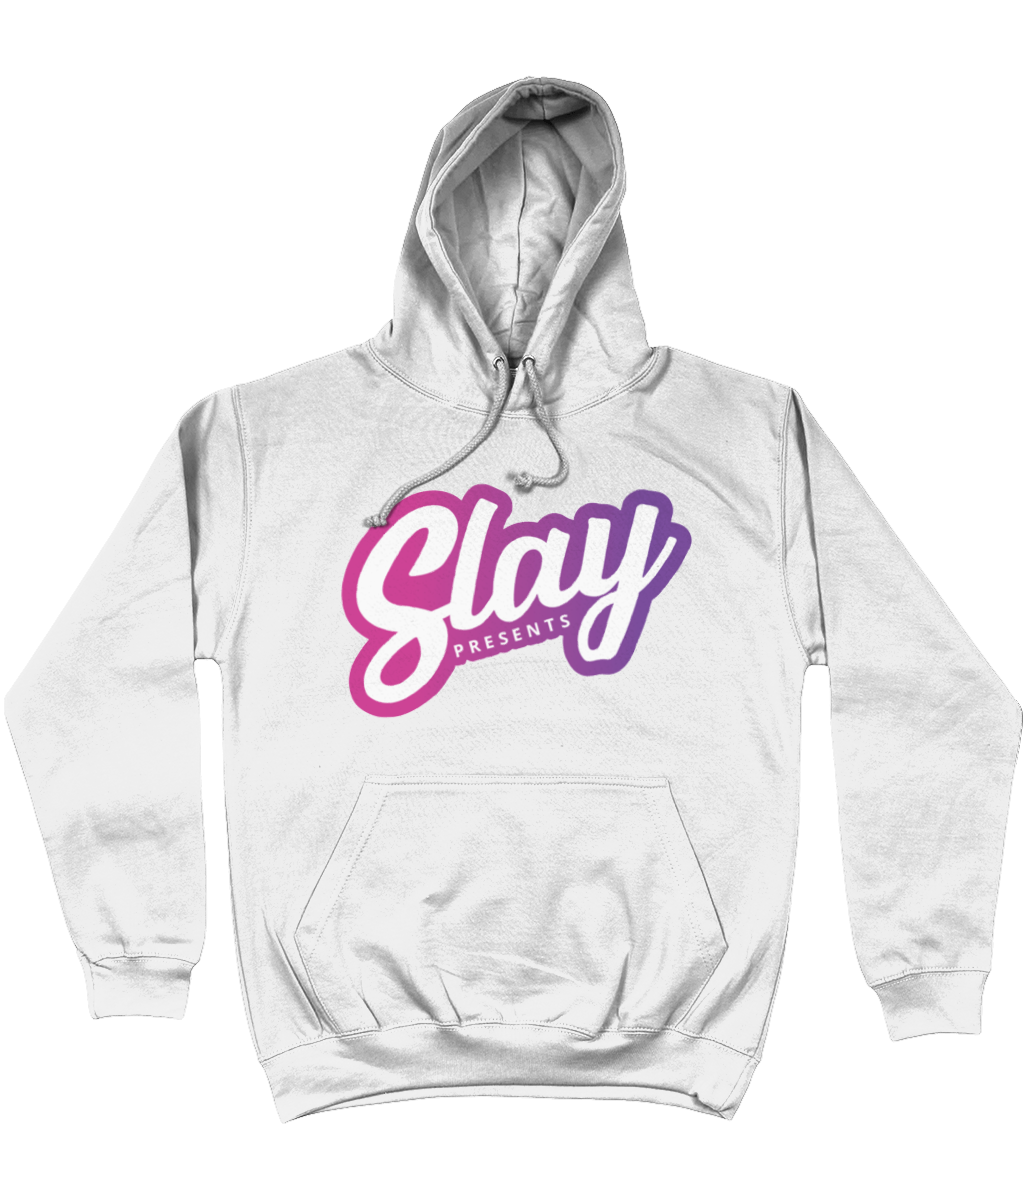 Slay! Presents Hoodie - SNATCHED MERCH